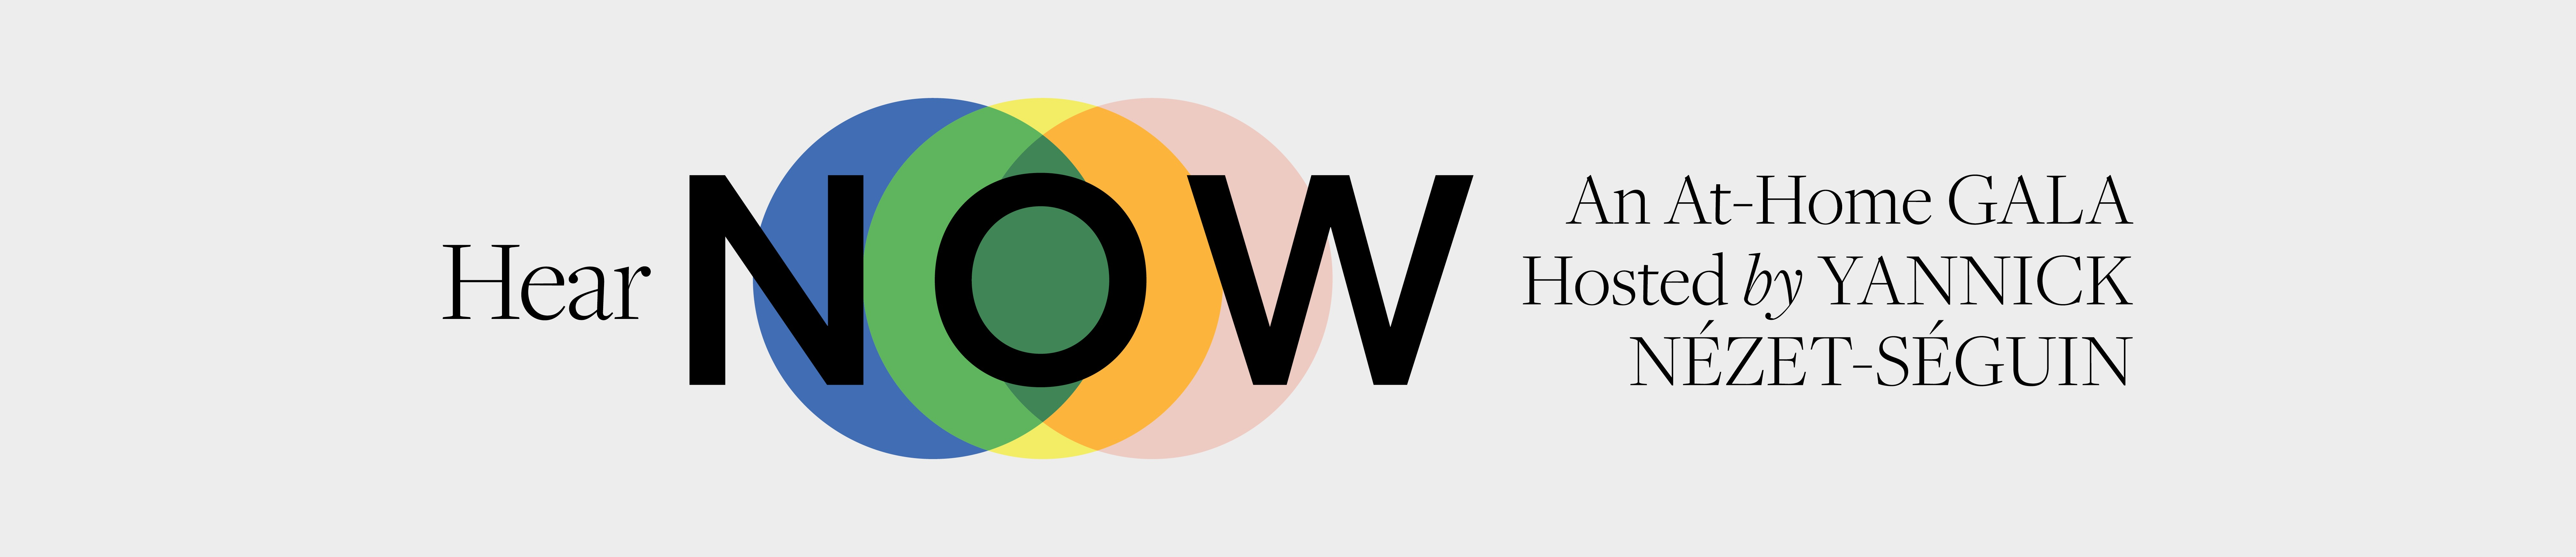 HearNOW At-Home Gala